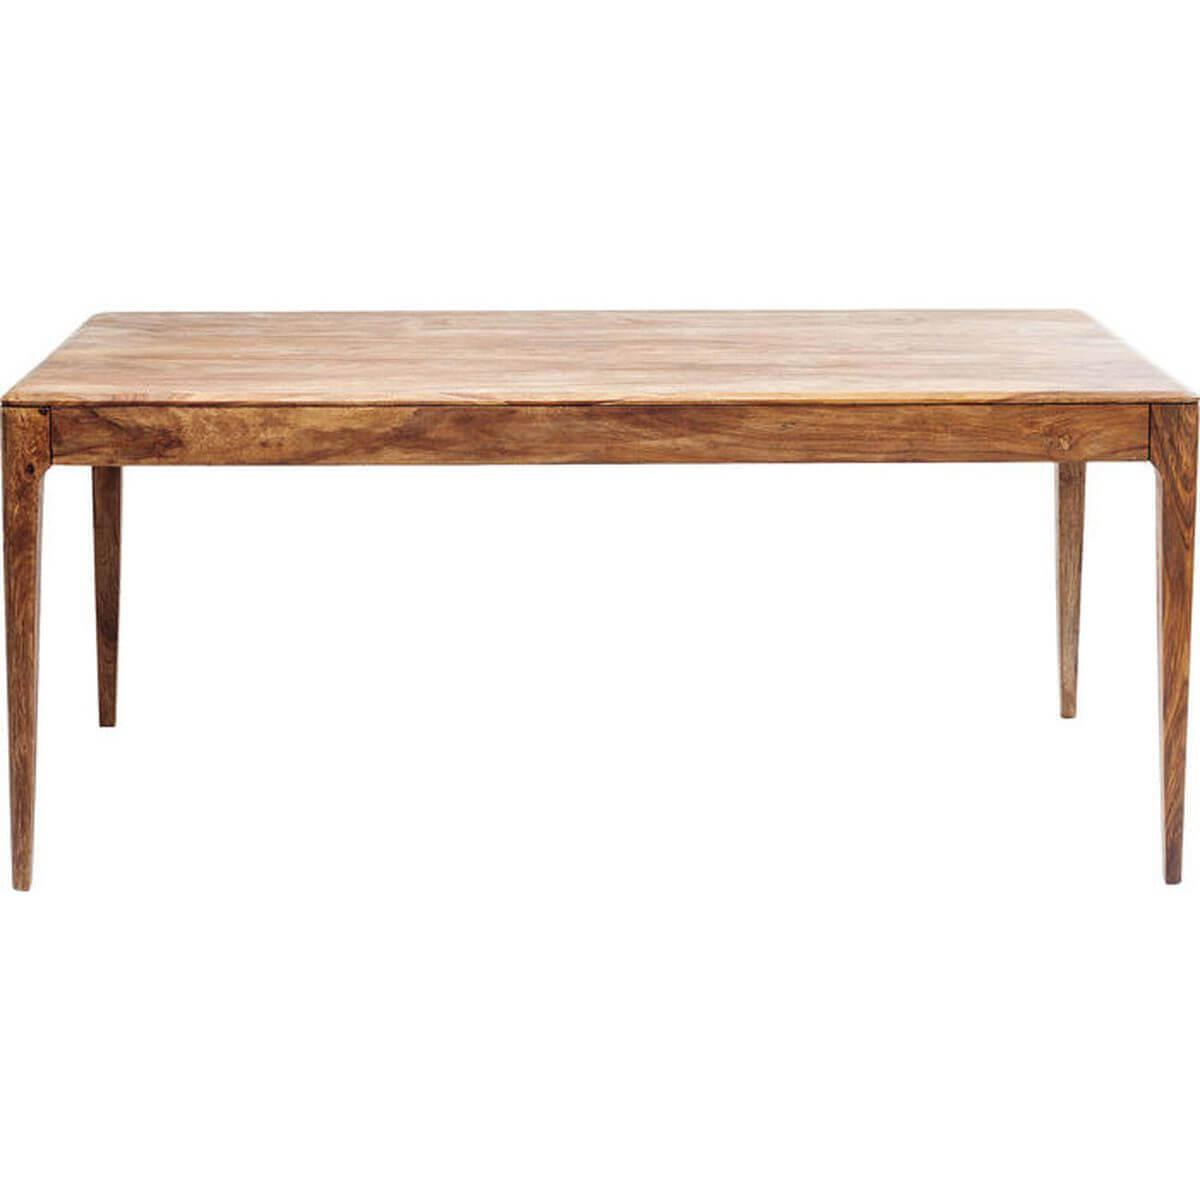 Table Brooklyn Nature Kare Design 175x90cm